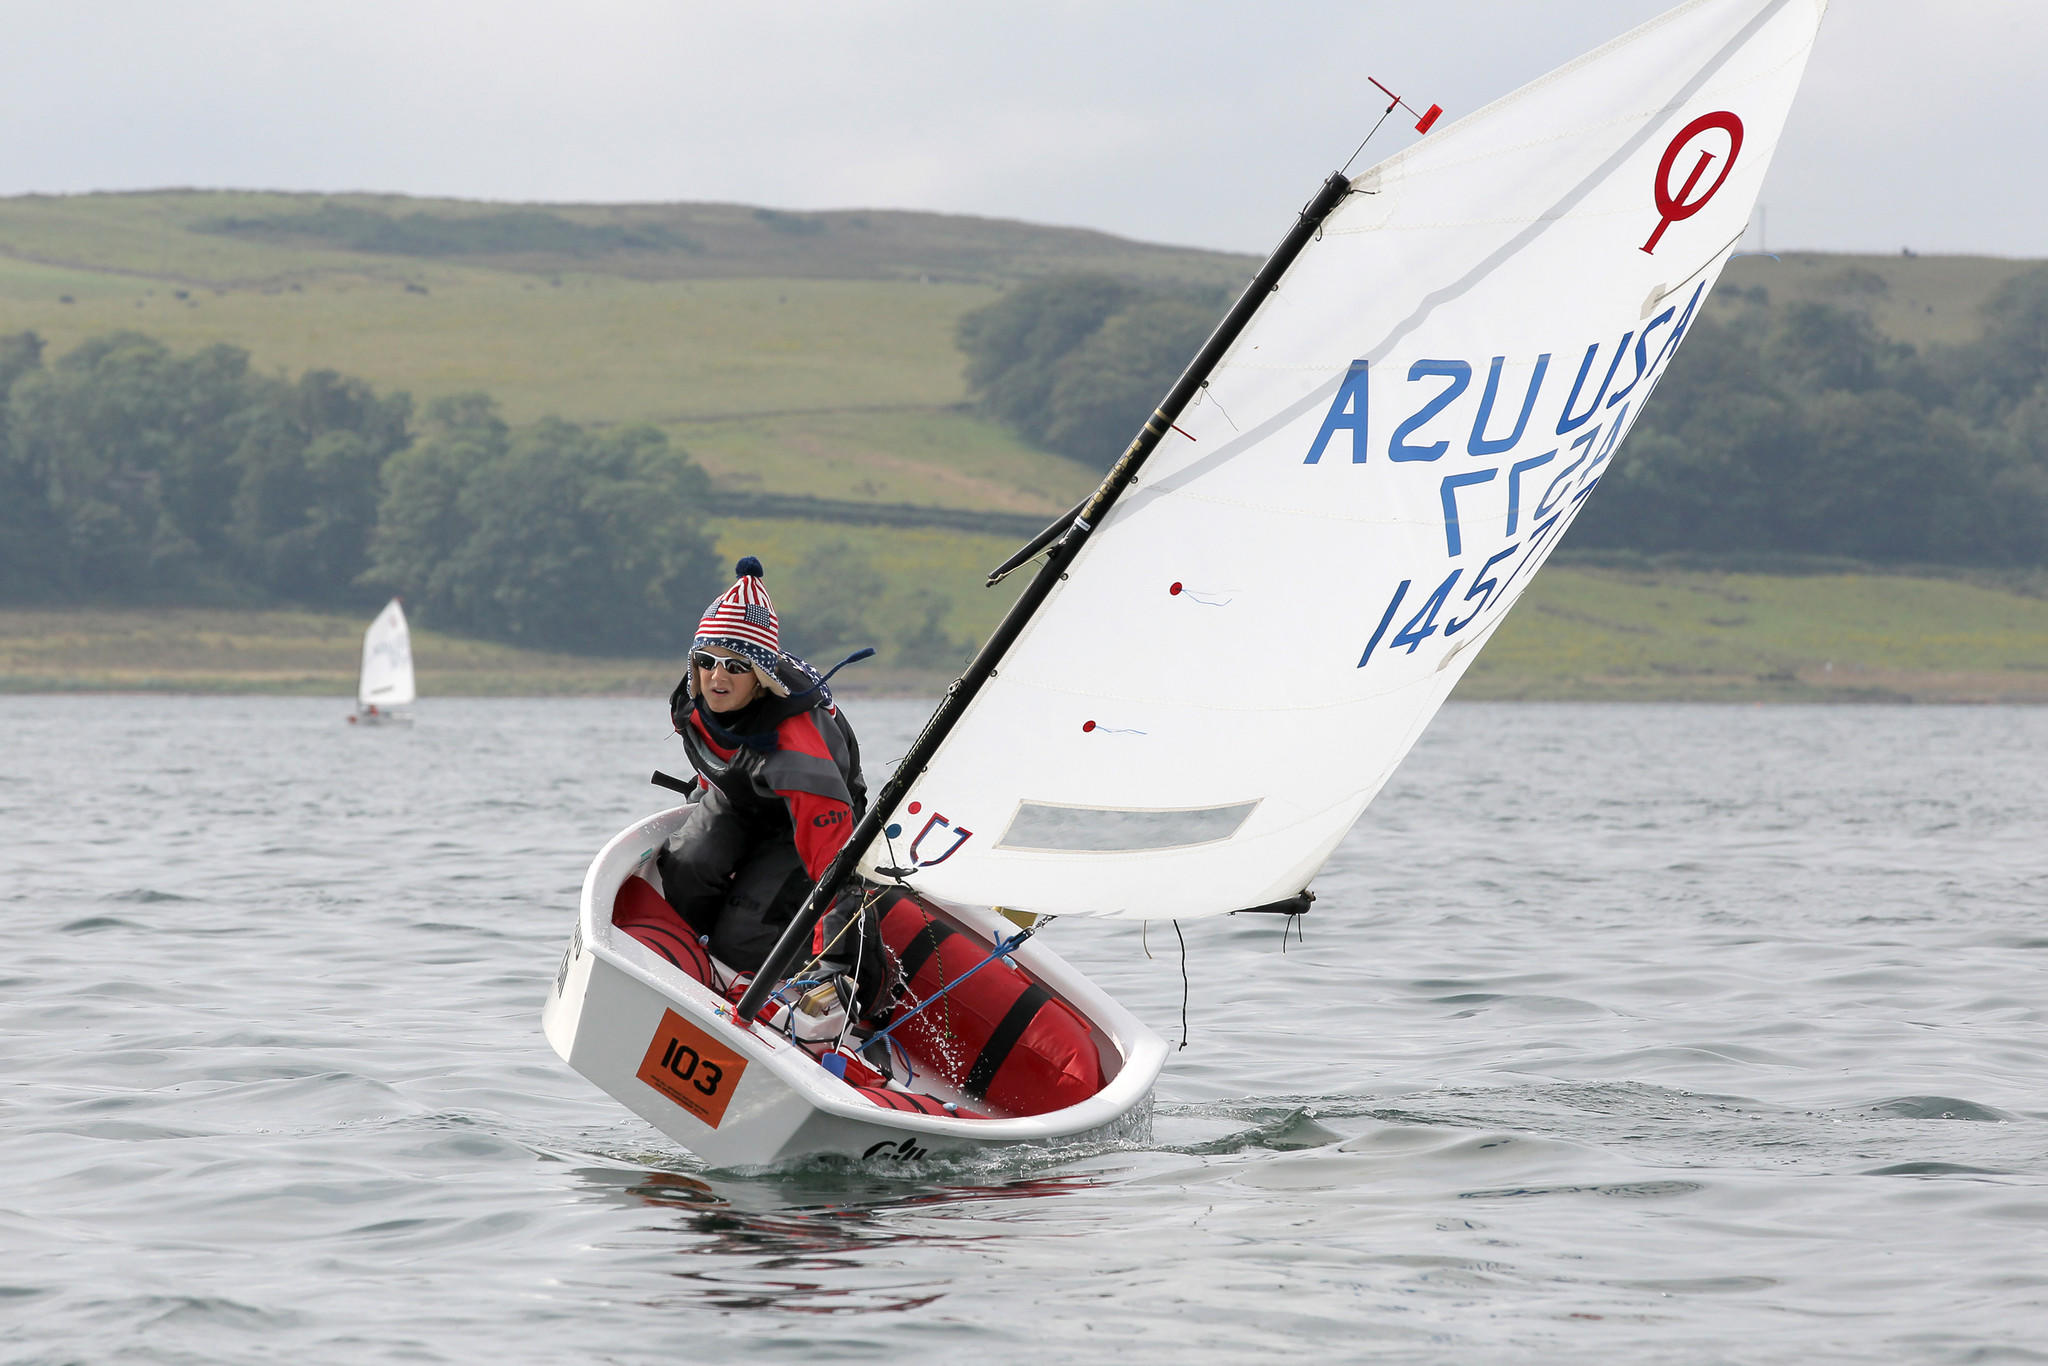 Avon sailor, Jack Howard, races his Opti at the British Nationals in Largs, Scotland in summer of 2013.